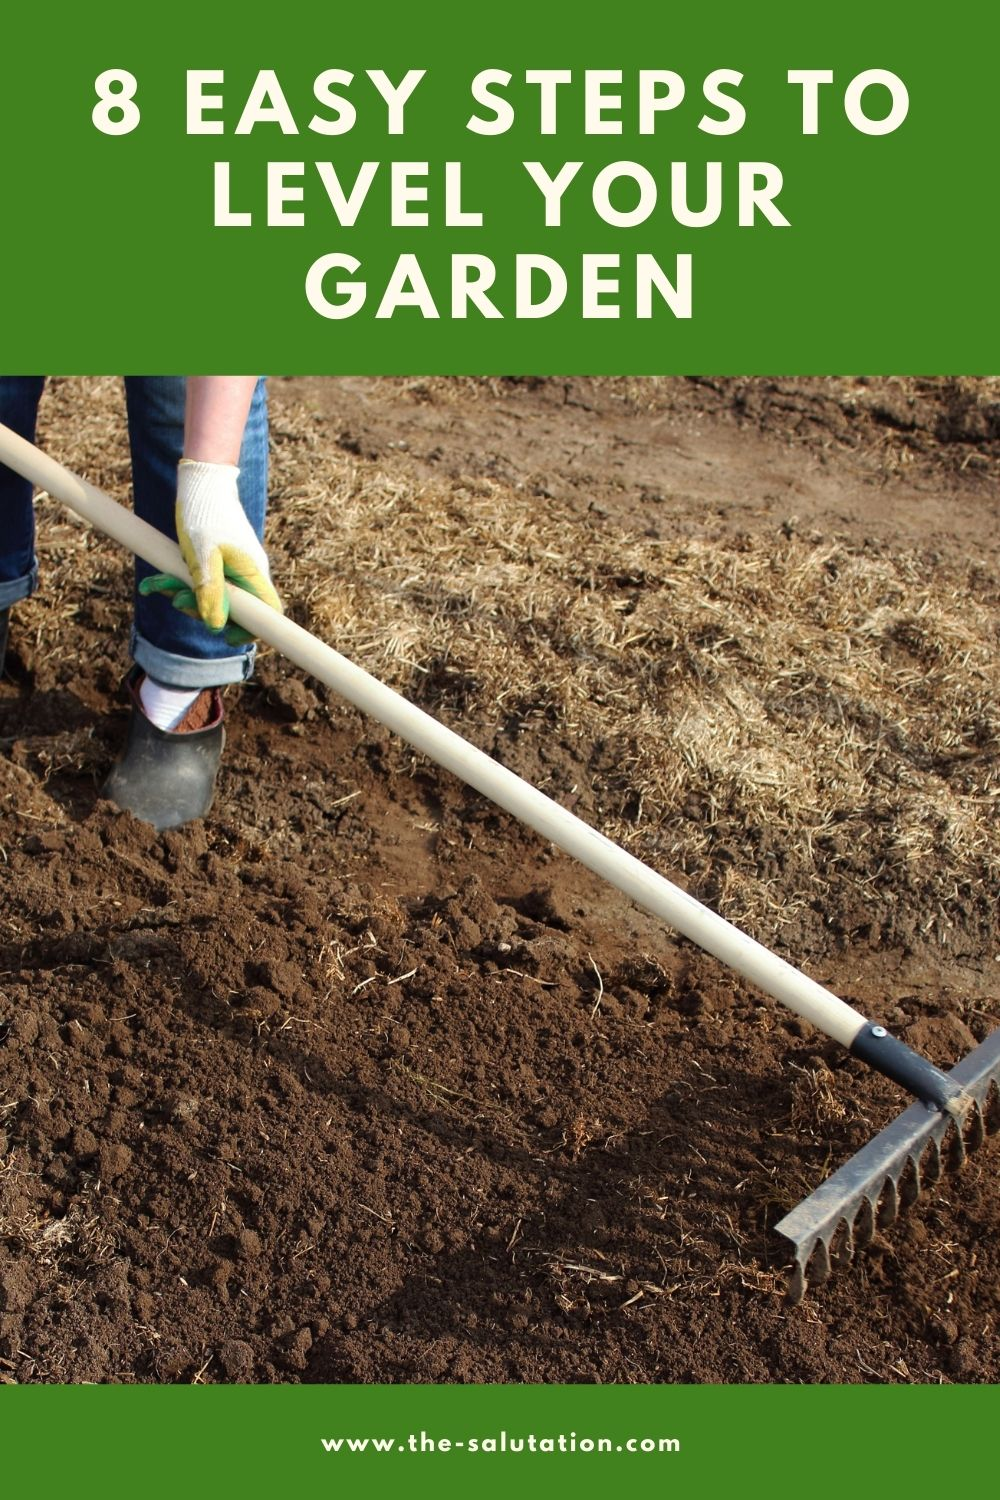 8 Easy Steps to Level Your Garden 1